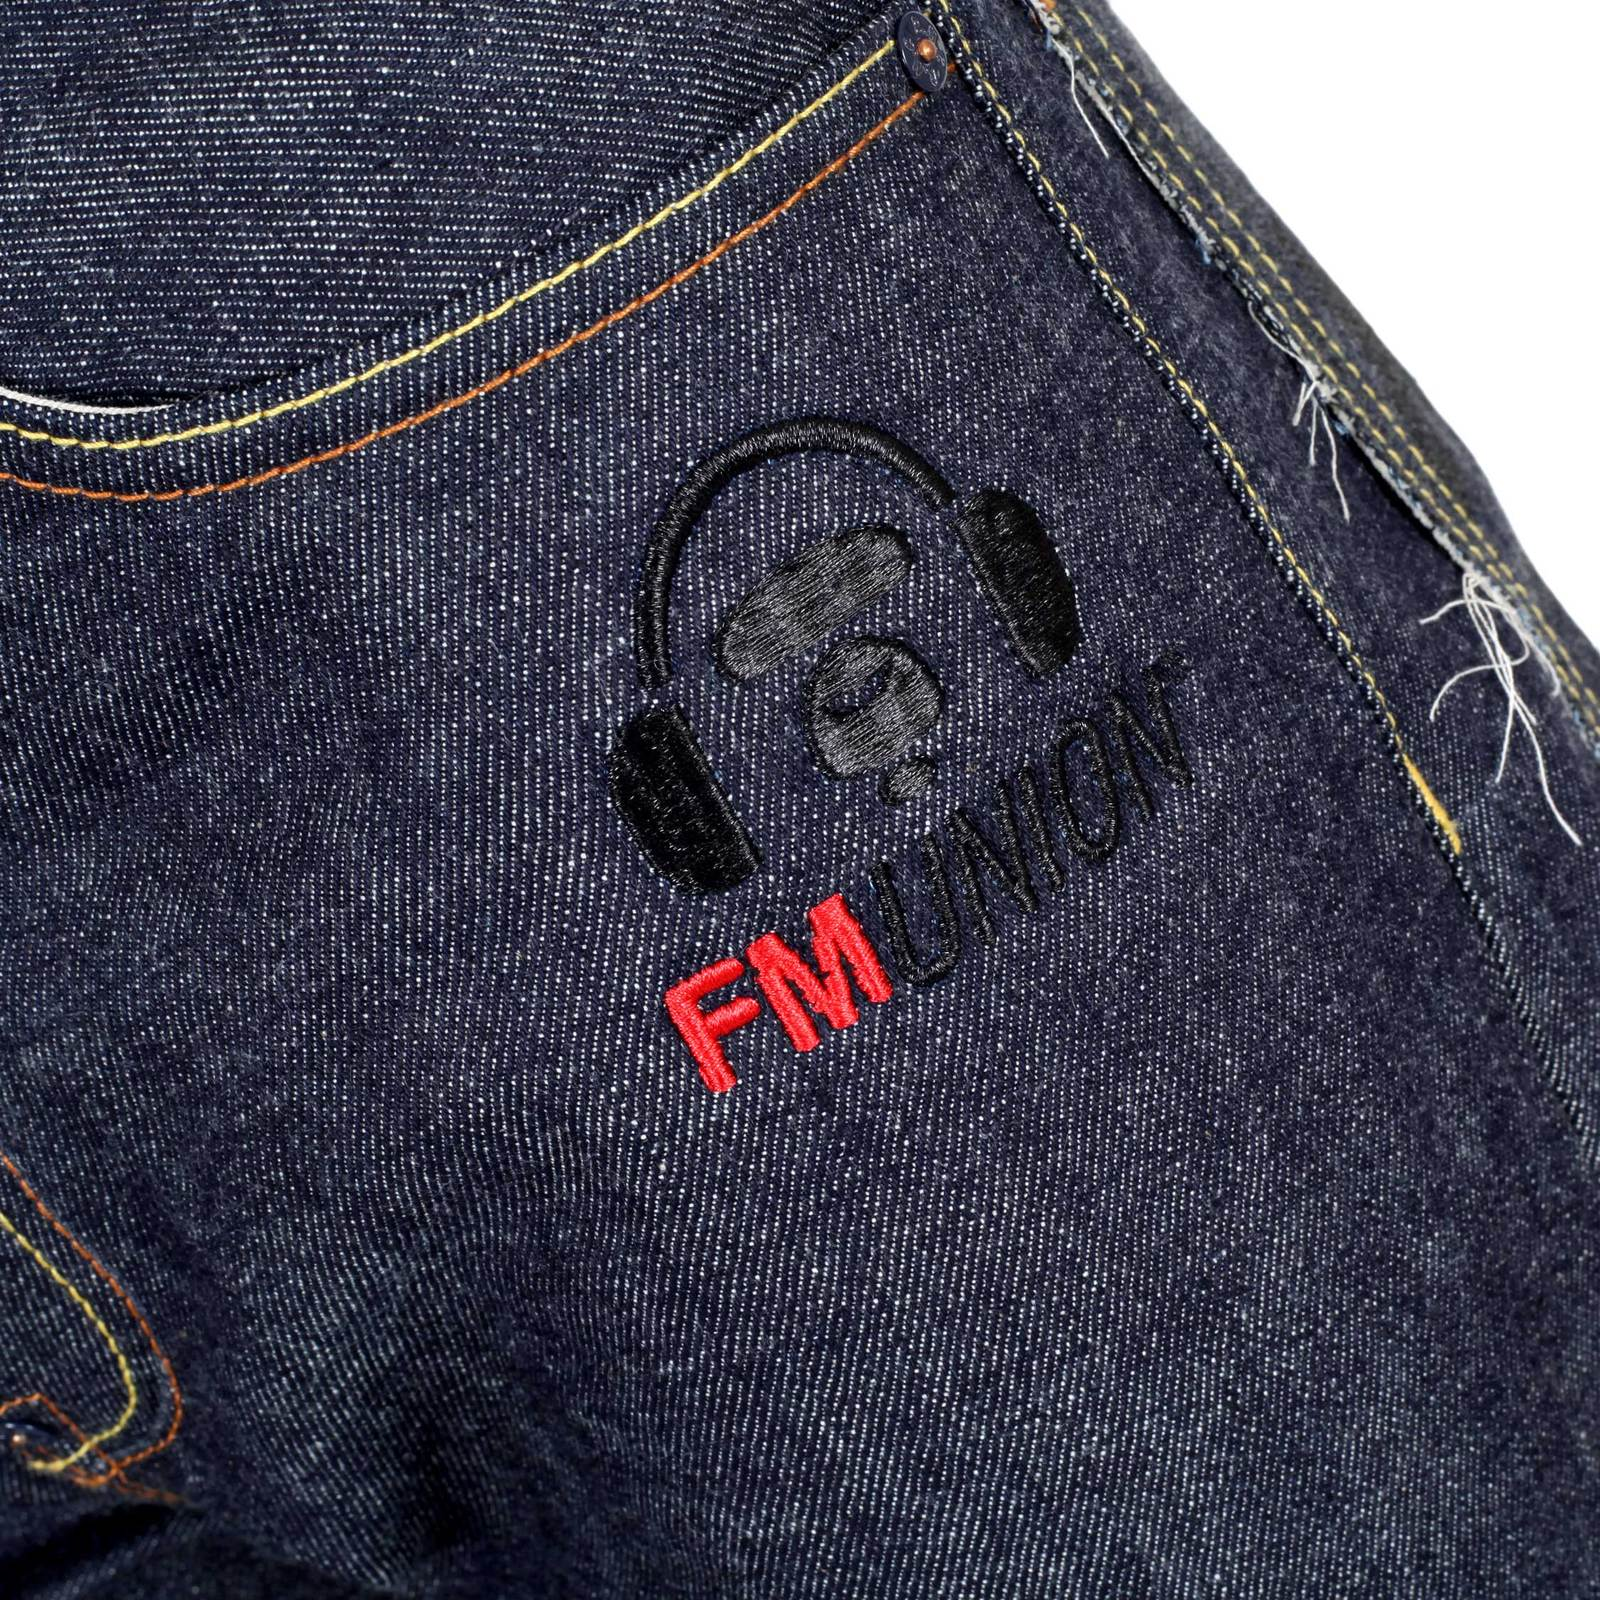 Buy excellent red monkey embroidered raw denim jeans